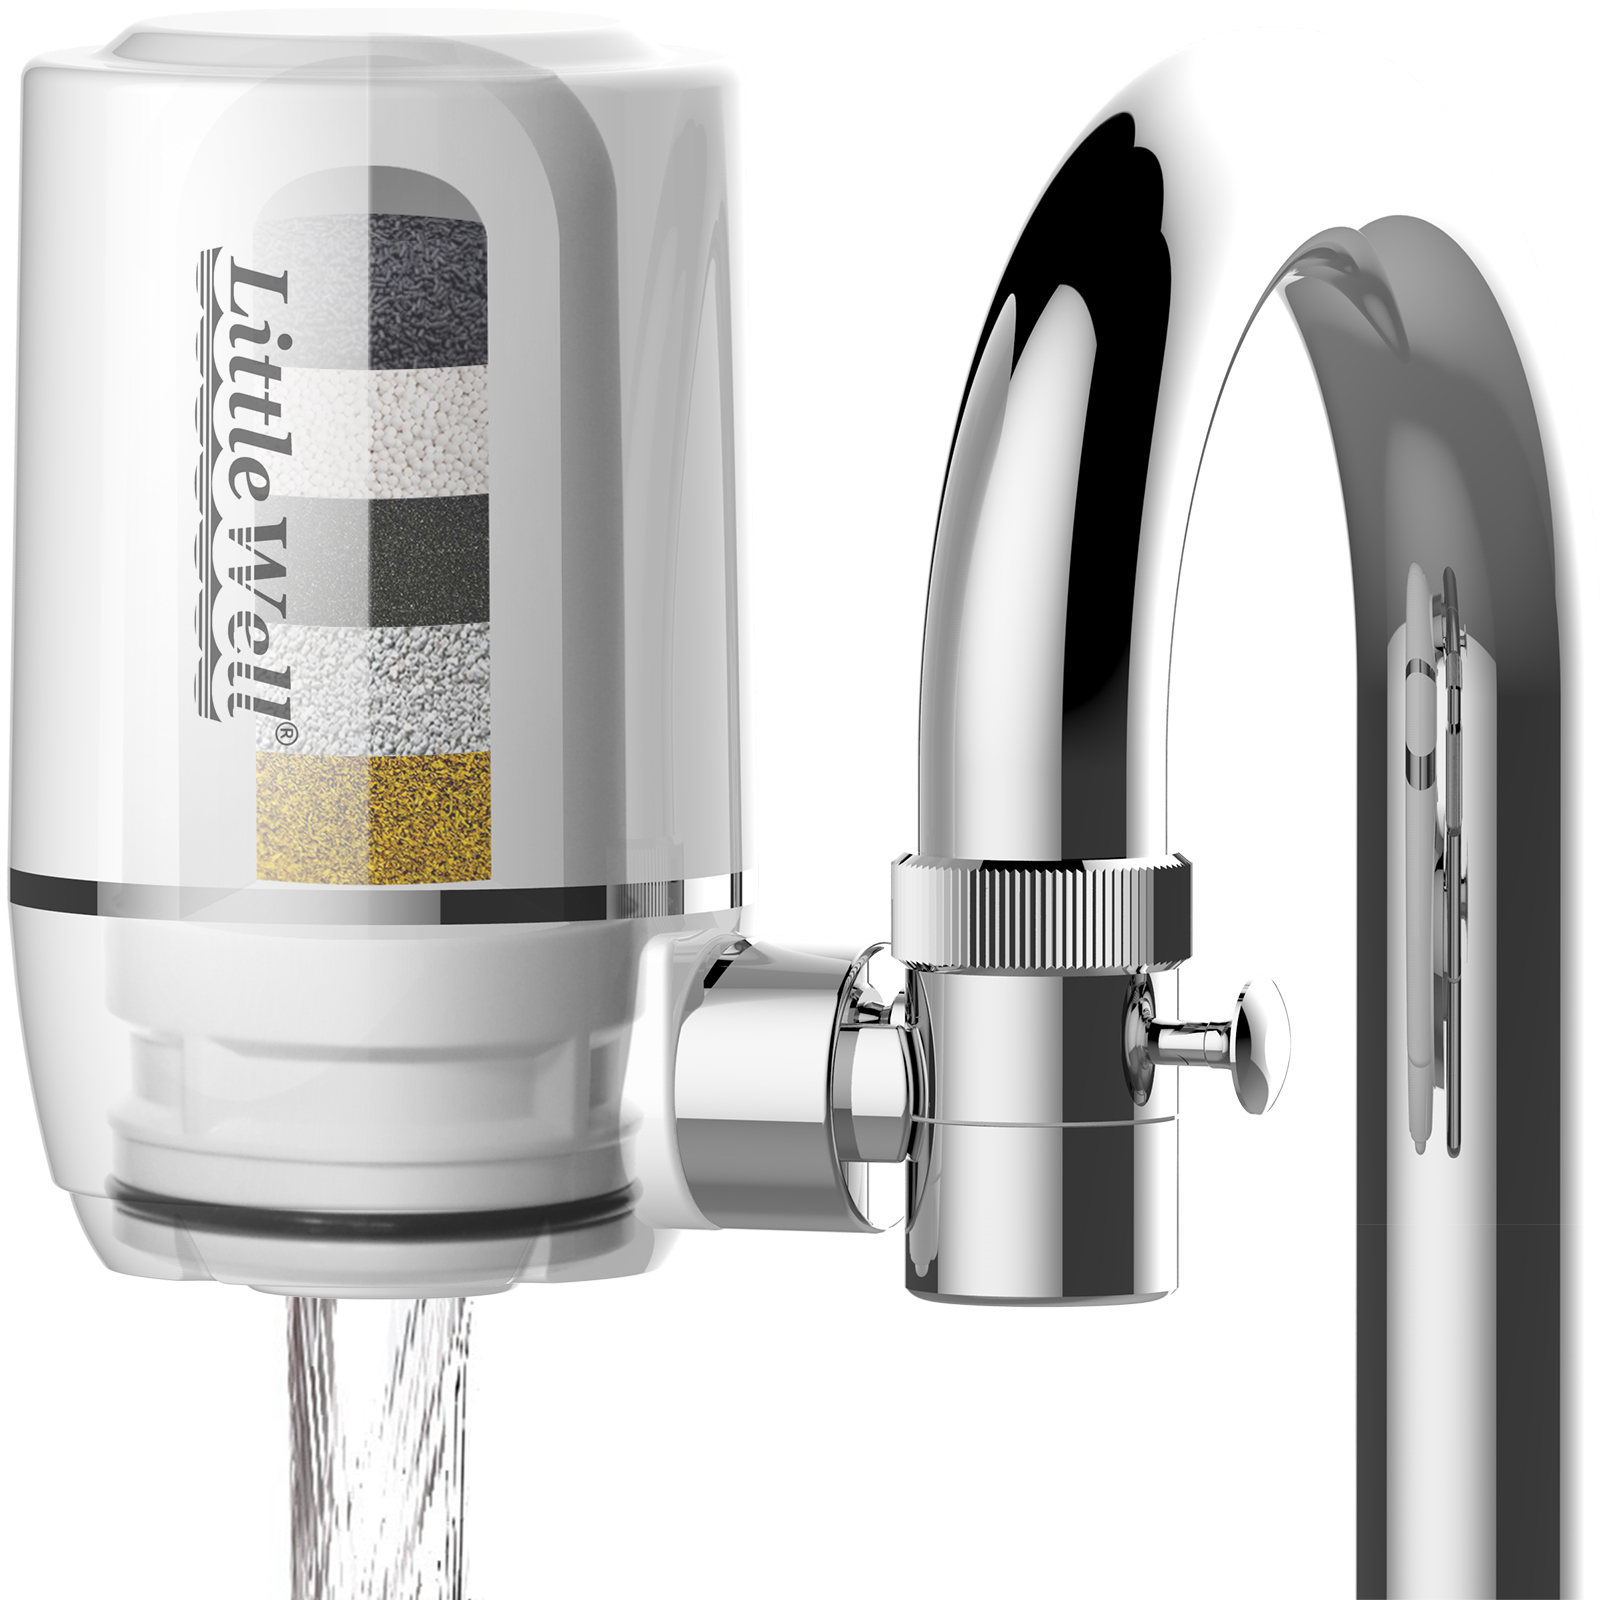 filtration com filter discountfilterstore faucet system tap on water brita base